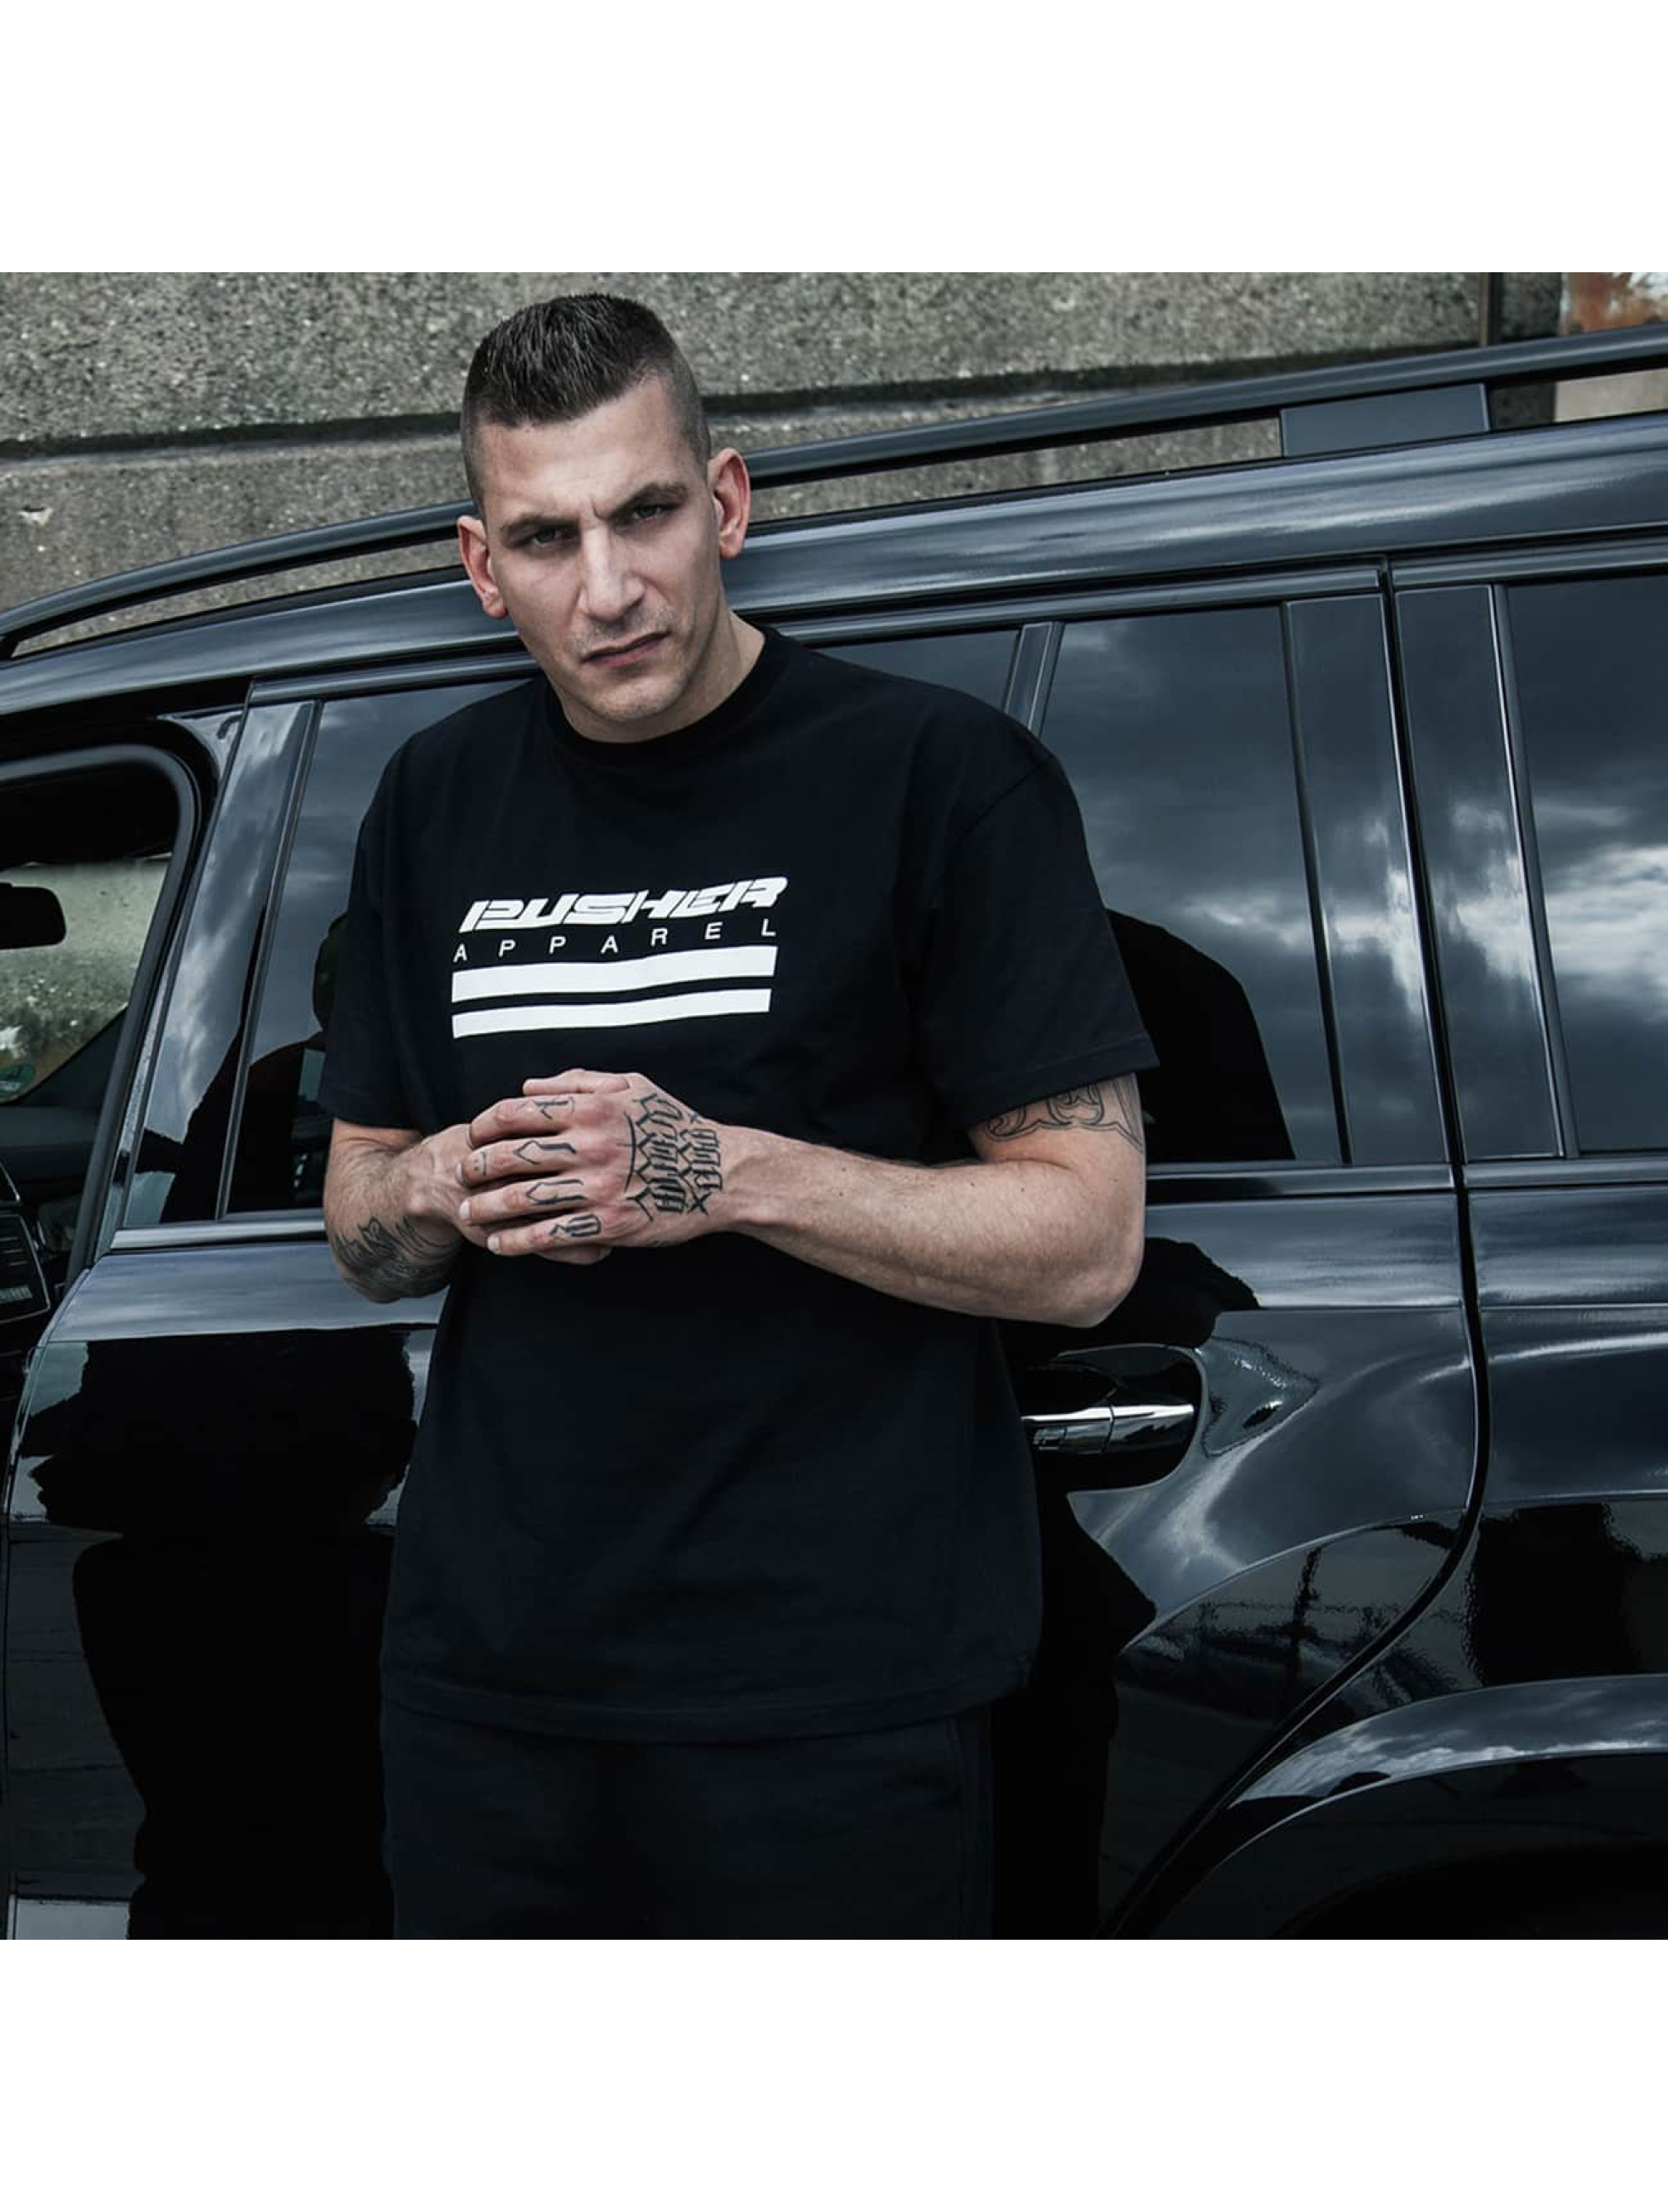 Pusher Apparel T-Shirt Apparel 503 Theft black